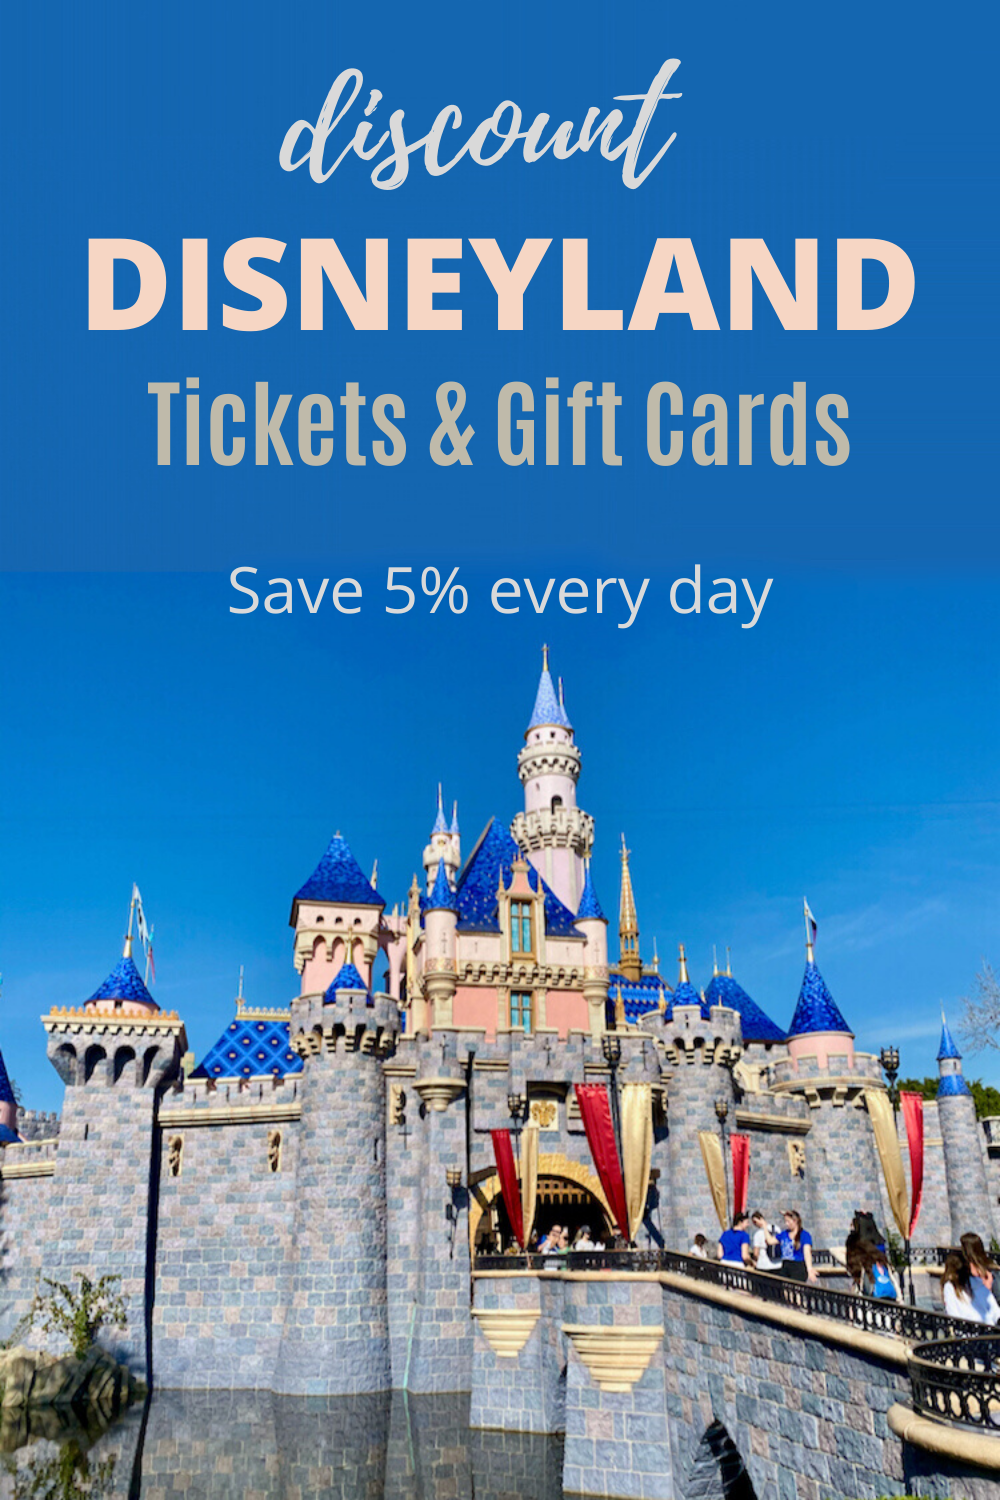 Disneyland Ticket Gift Card Discount Save 5 With Target Redcard All Things Target